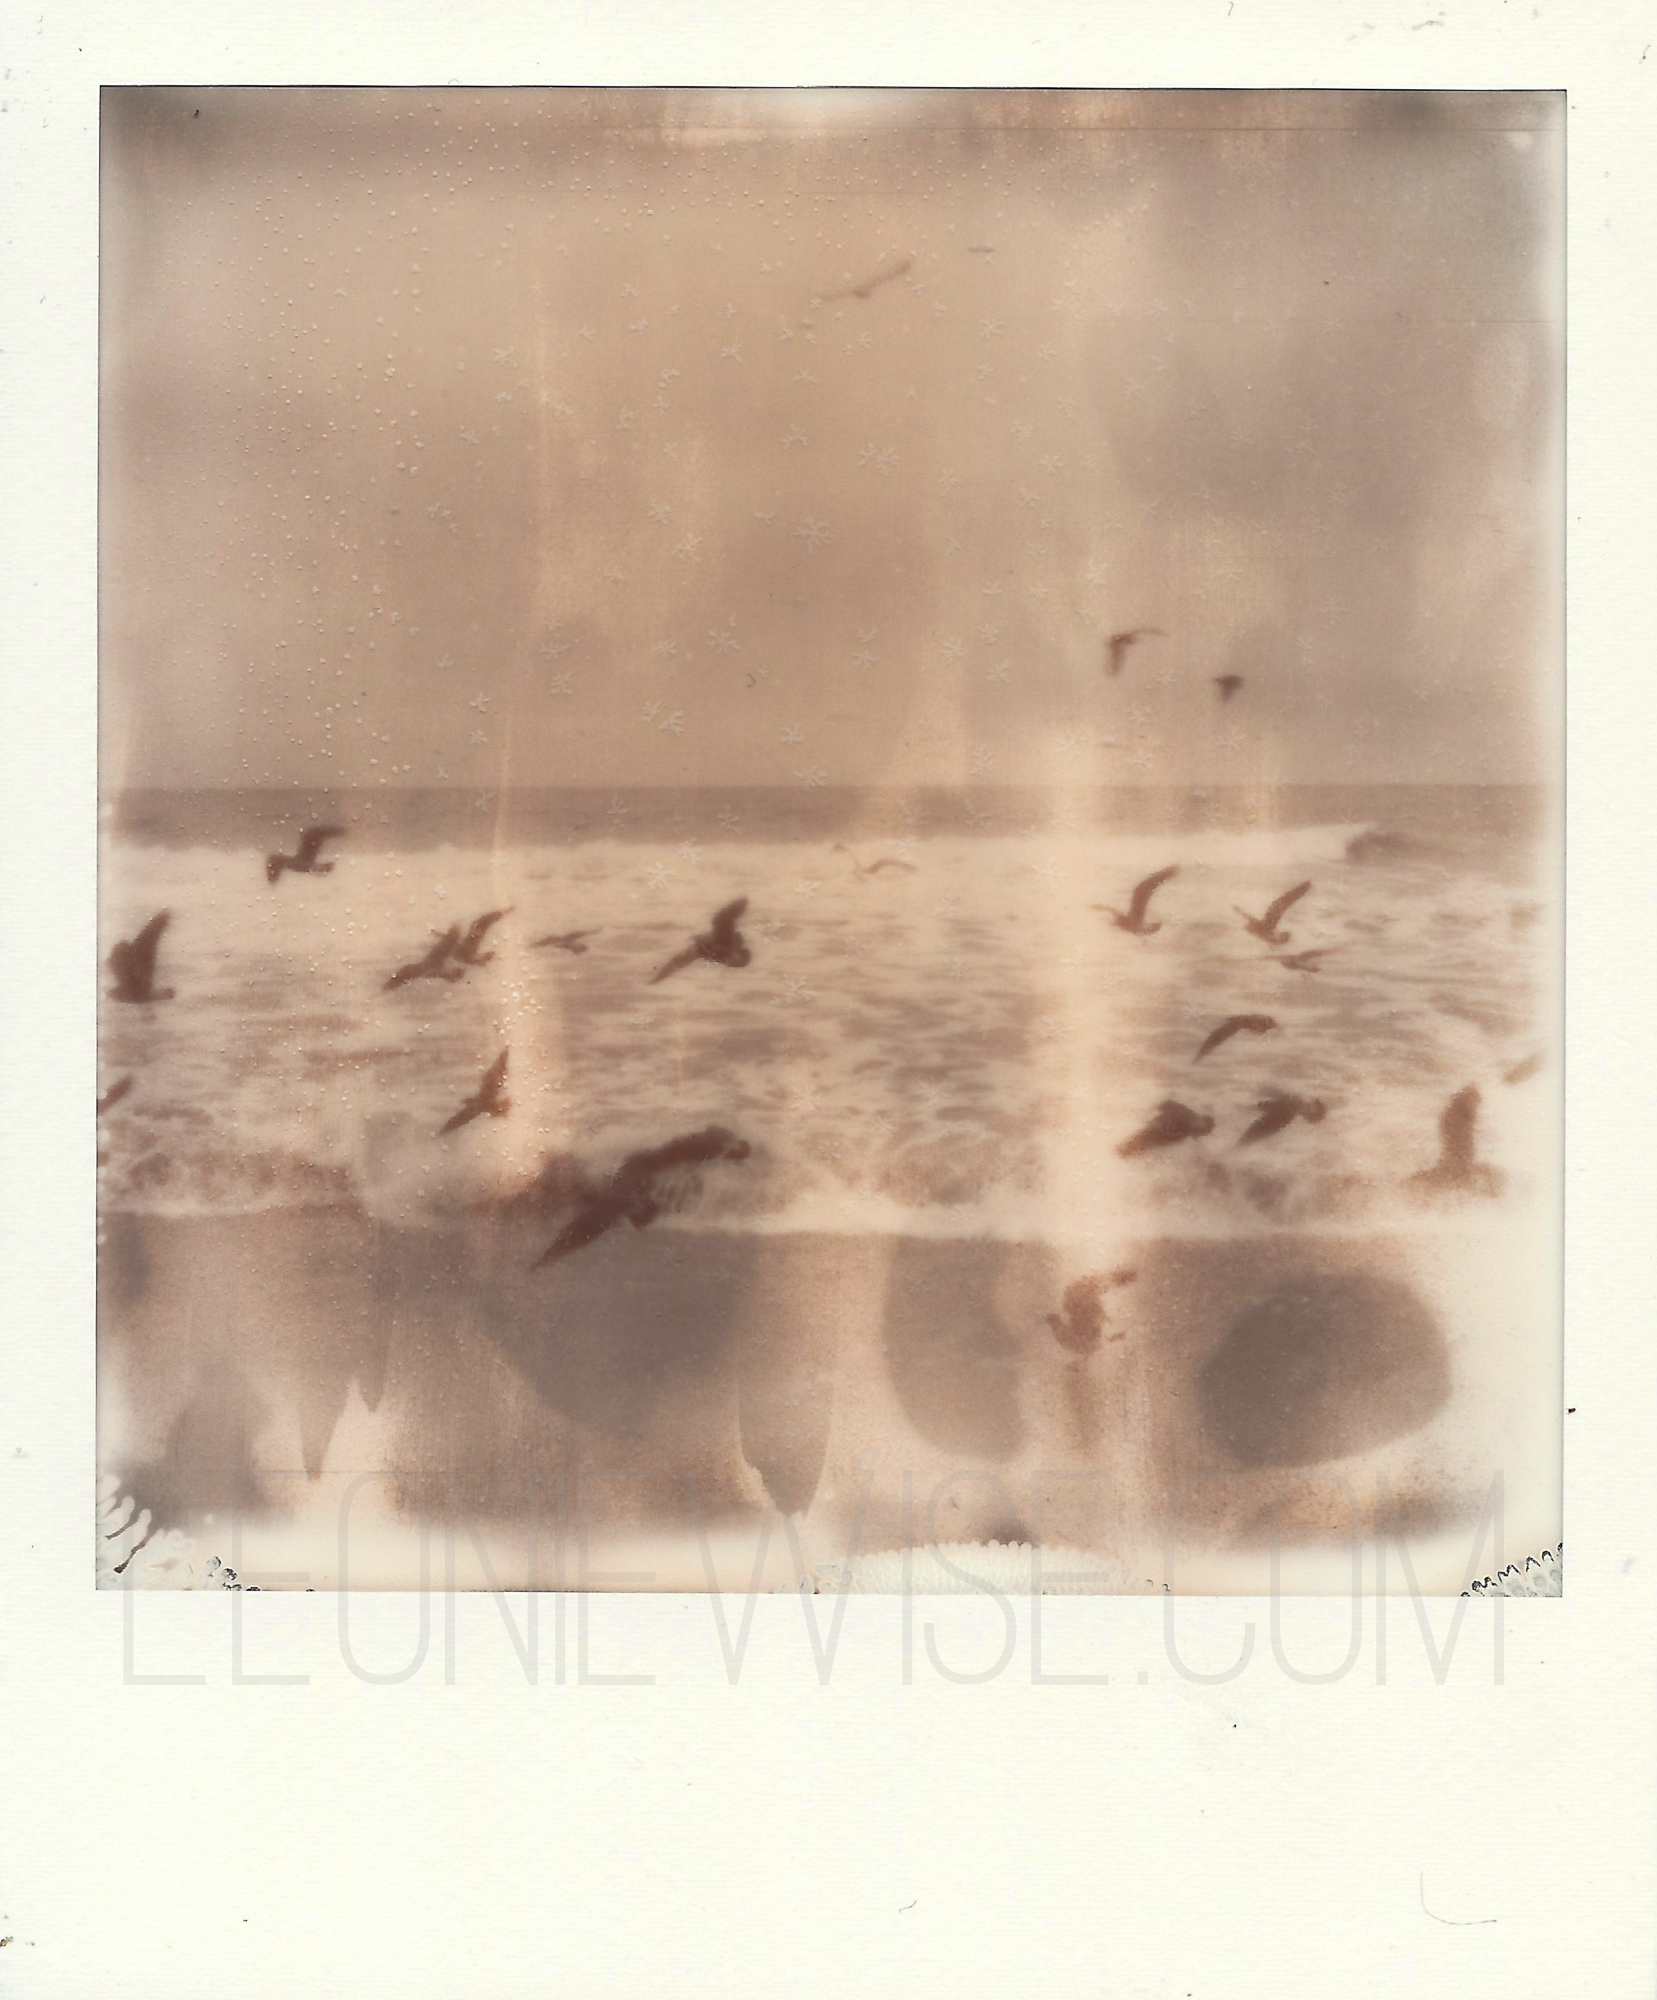 polaroid sx-70, impossible project px100 silvershad film. birds in flight. copyright leonie wise